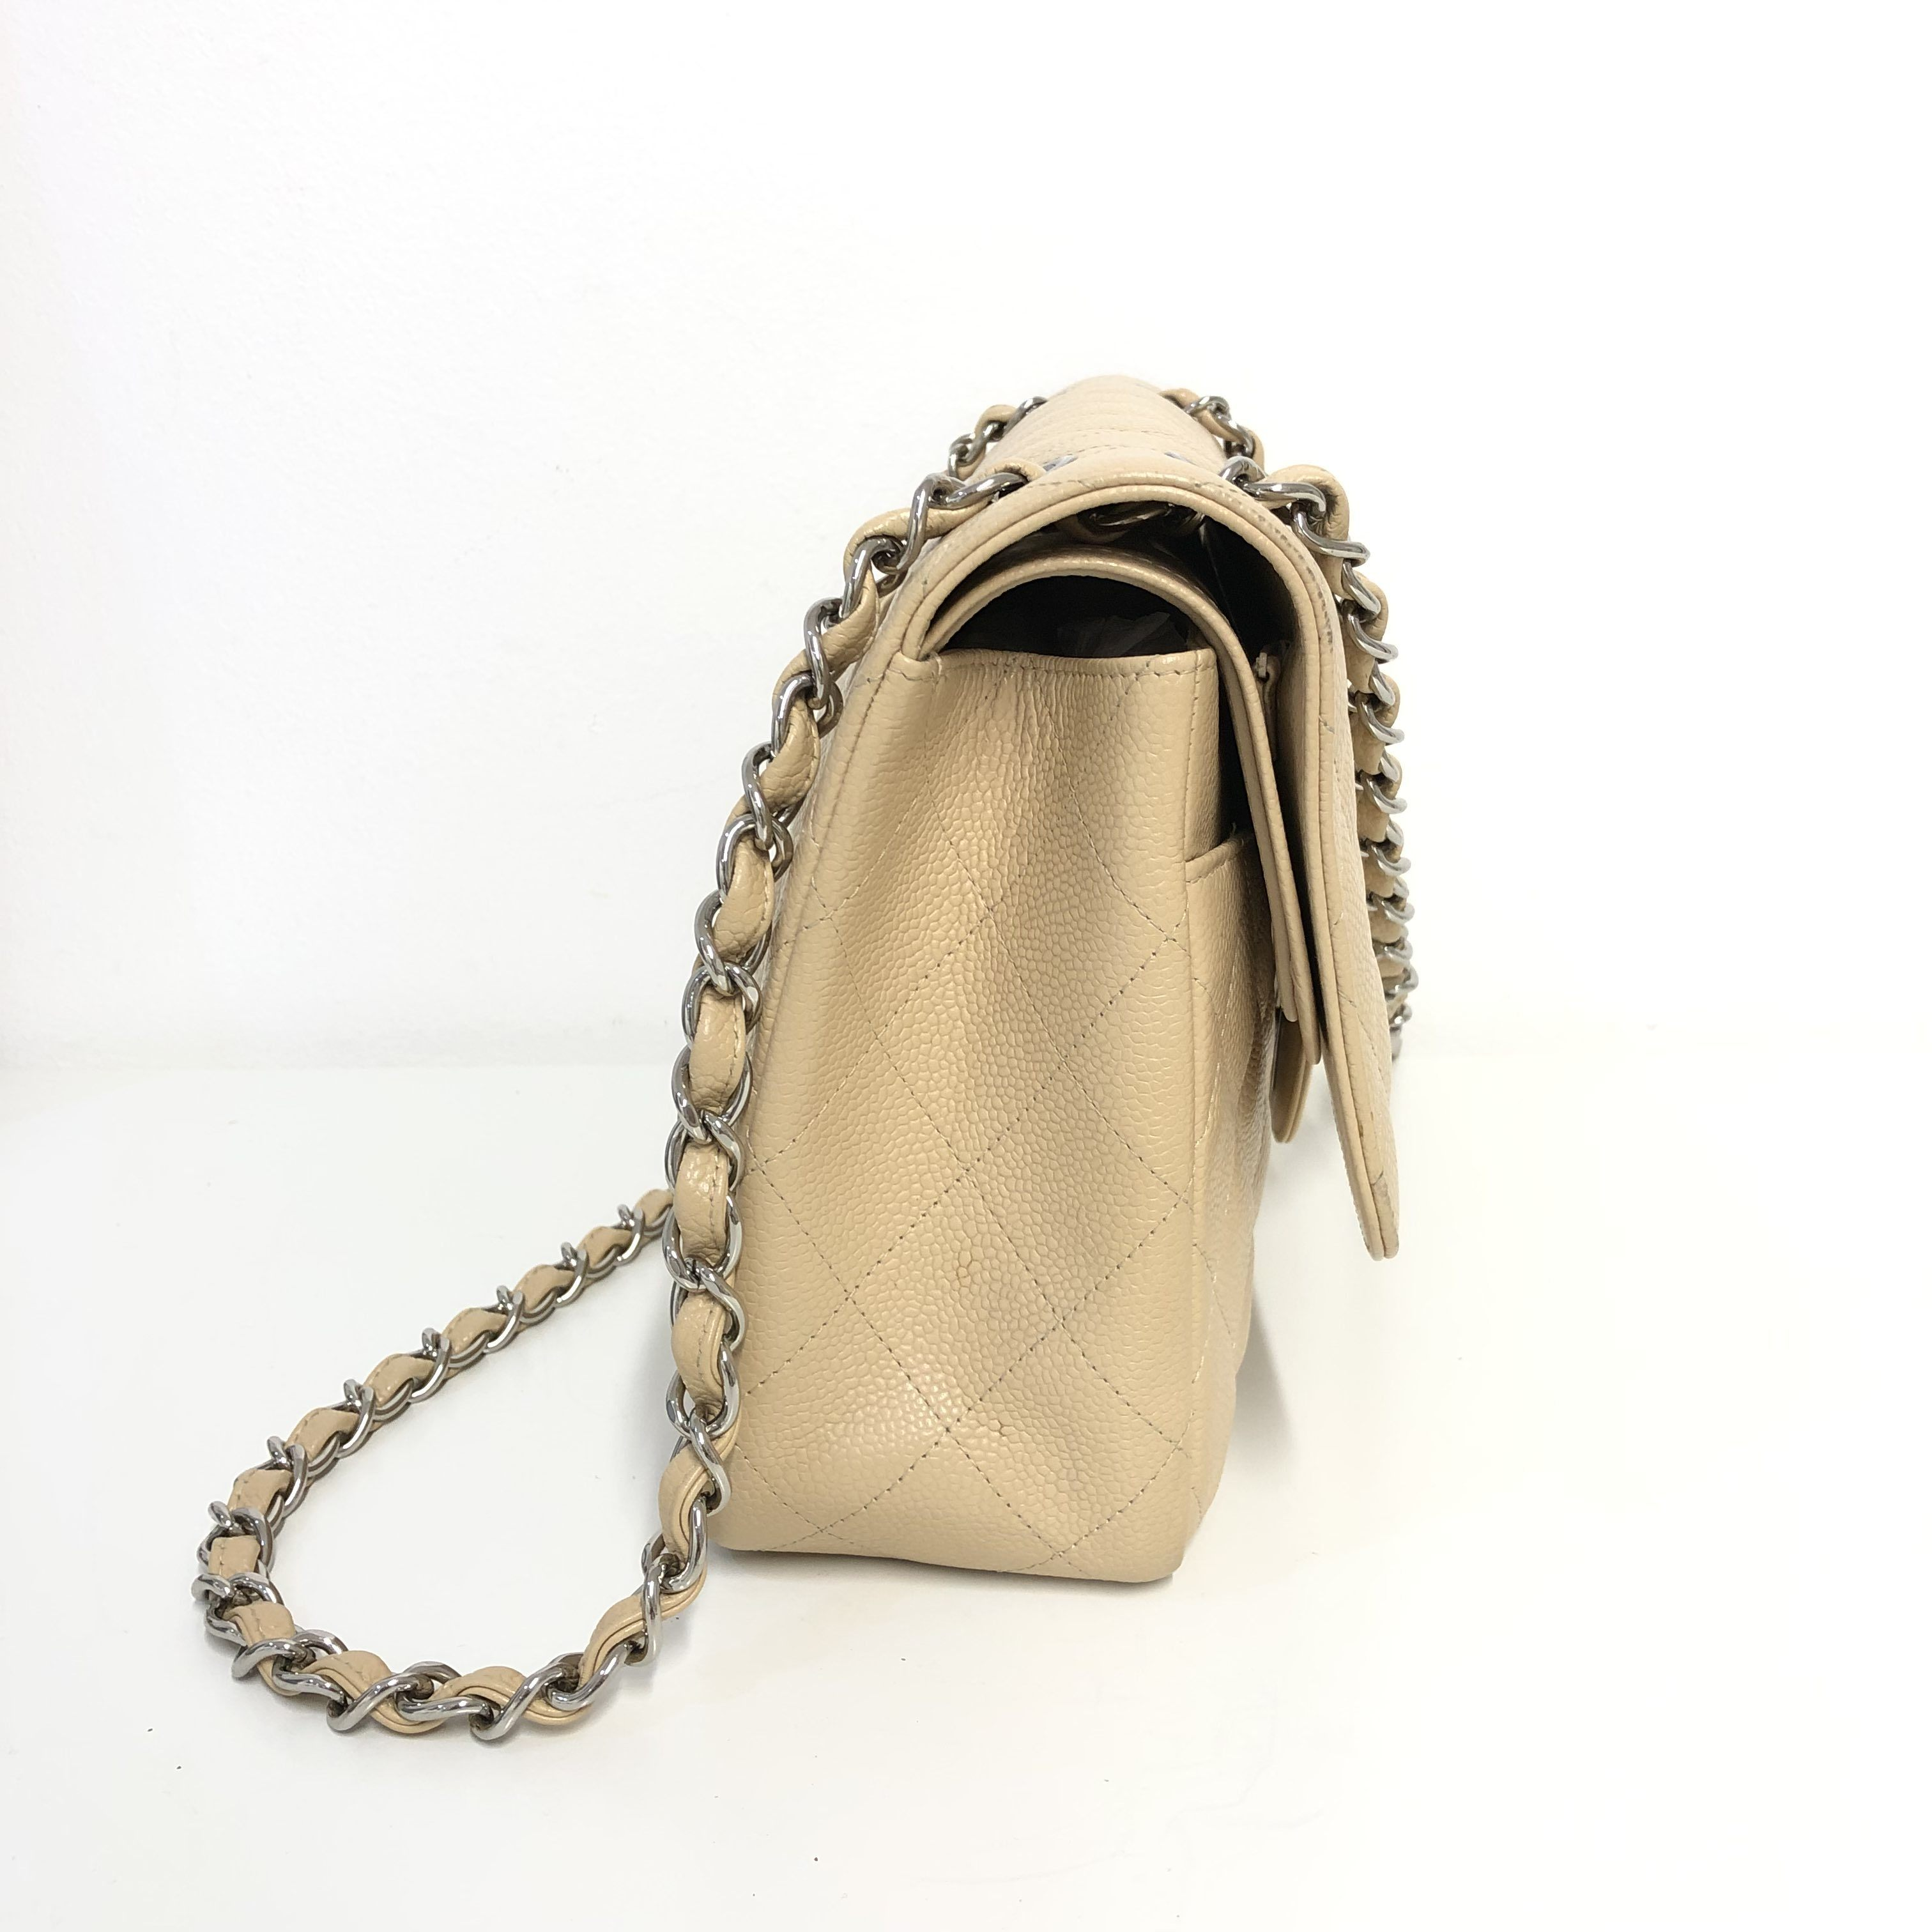 8b97d5cdaced Chanel Beige Quilted Caviar Leather Jumbo Classic Double Flap Bag ...